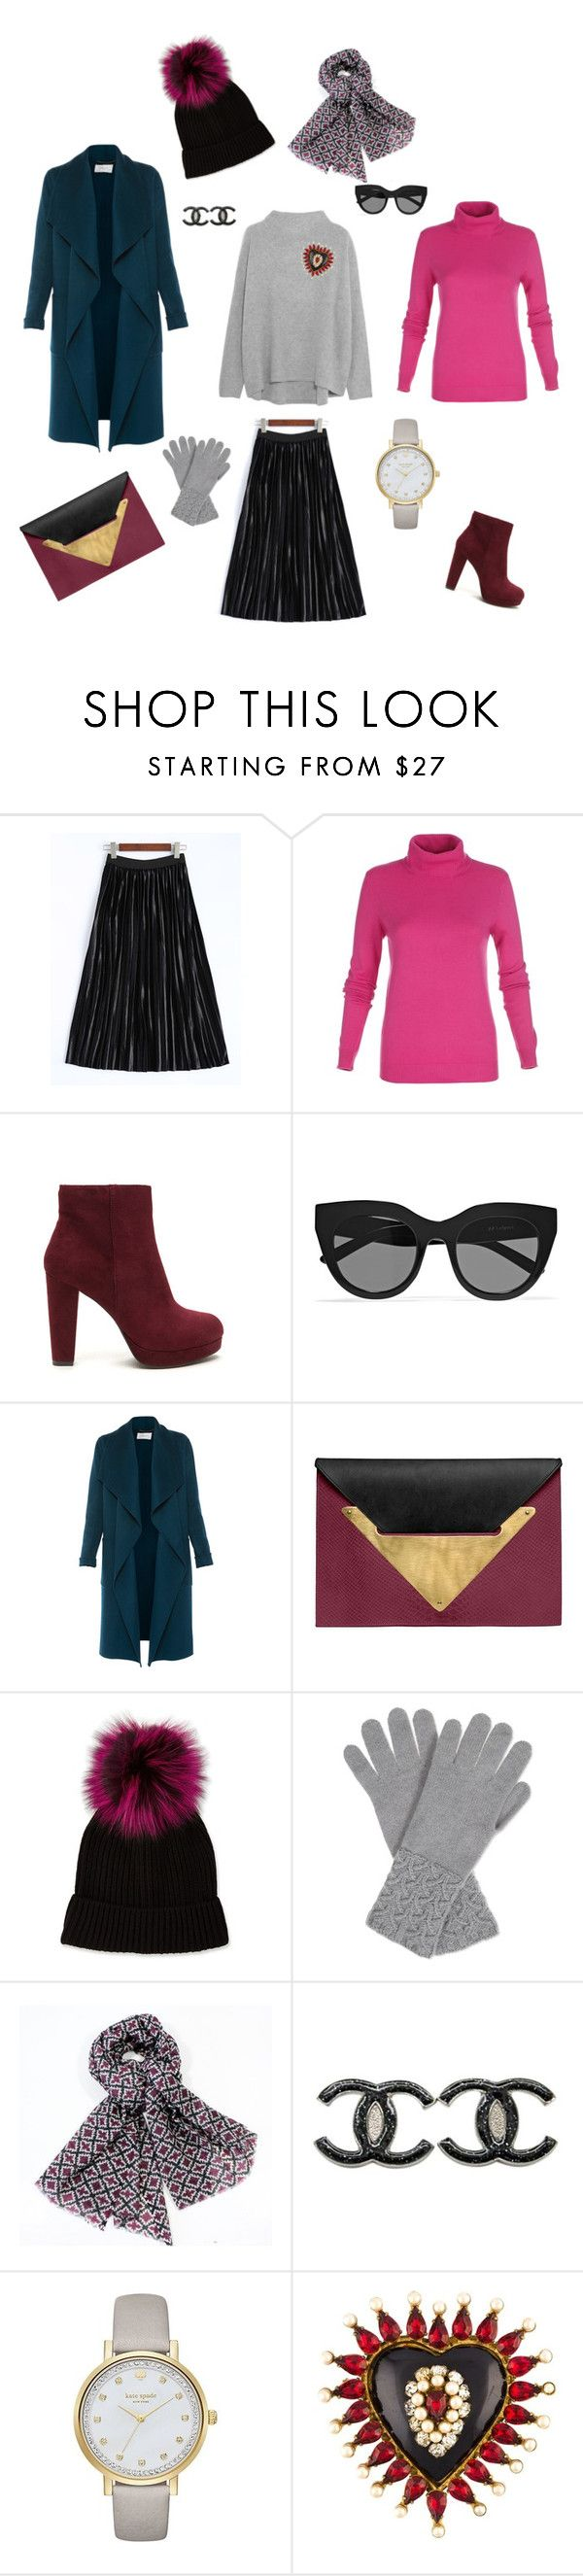 """Лук №2 (серый свитер)"" by madlily86 on Polyvore featuring мода, Vince, Le Specs, L.K.Bennett, Dareen Hakim, Neiman Marcus, Johnstons, Chanel и Kate Spade"